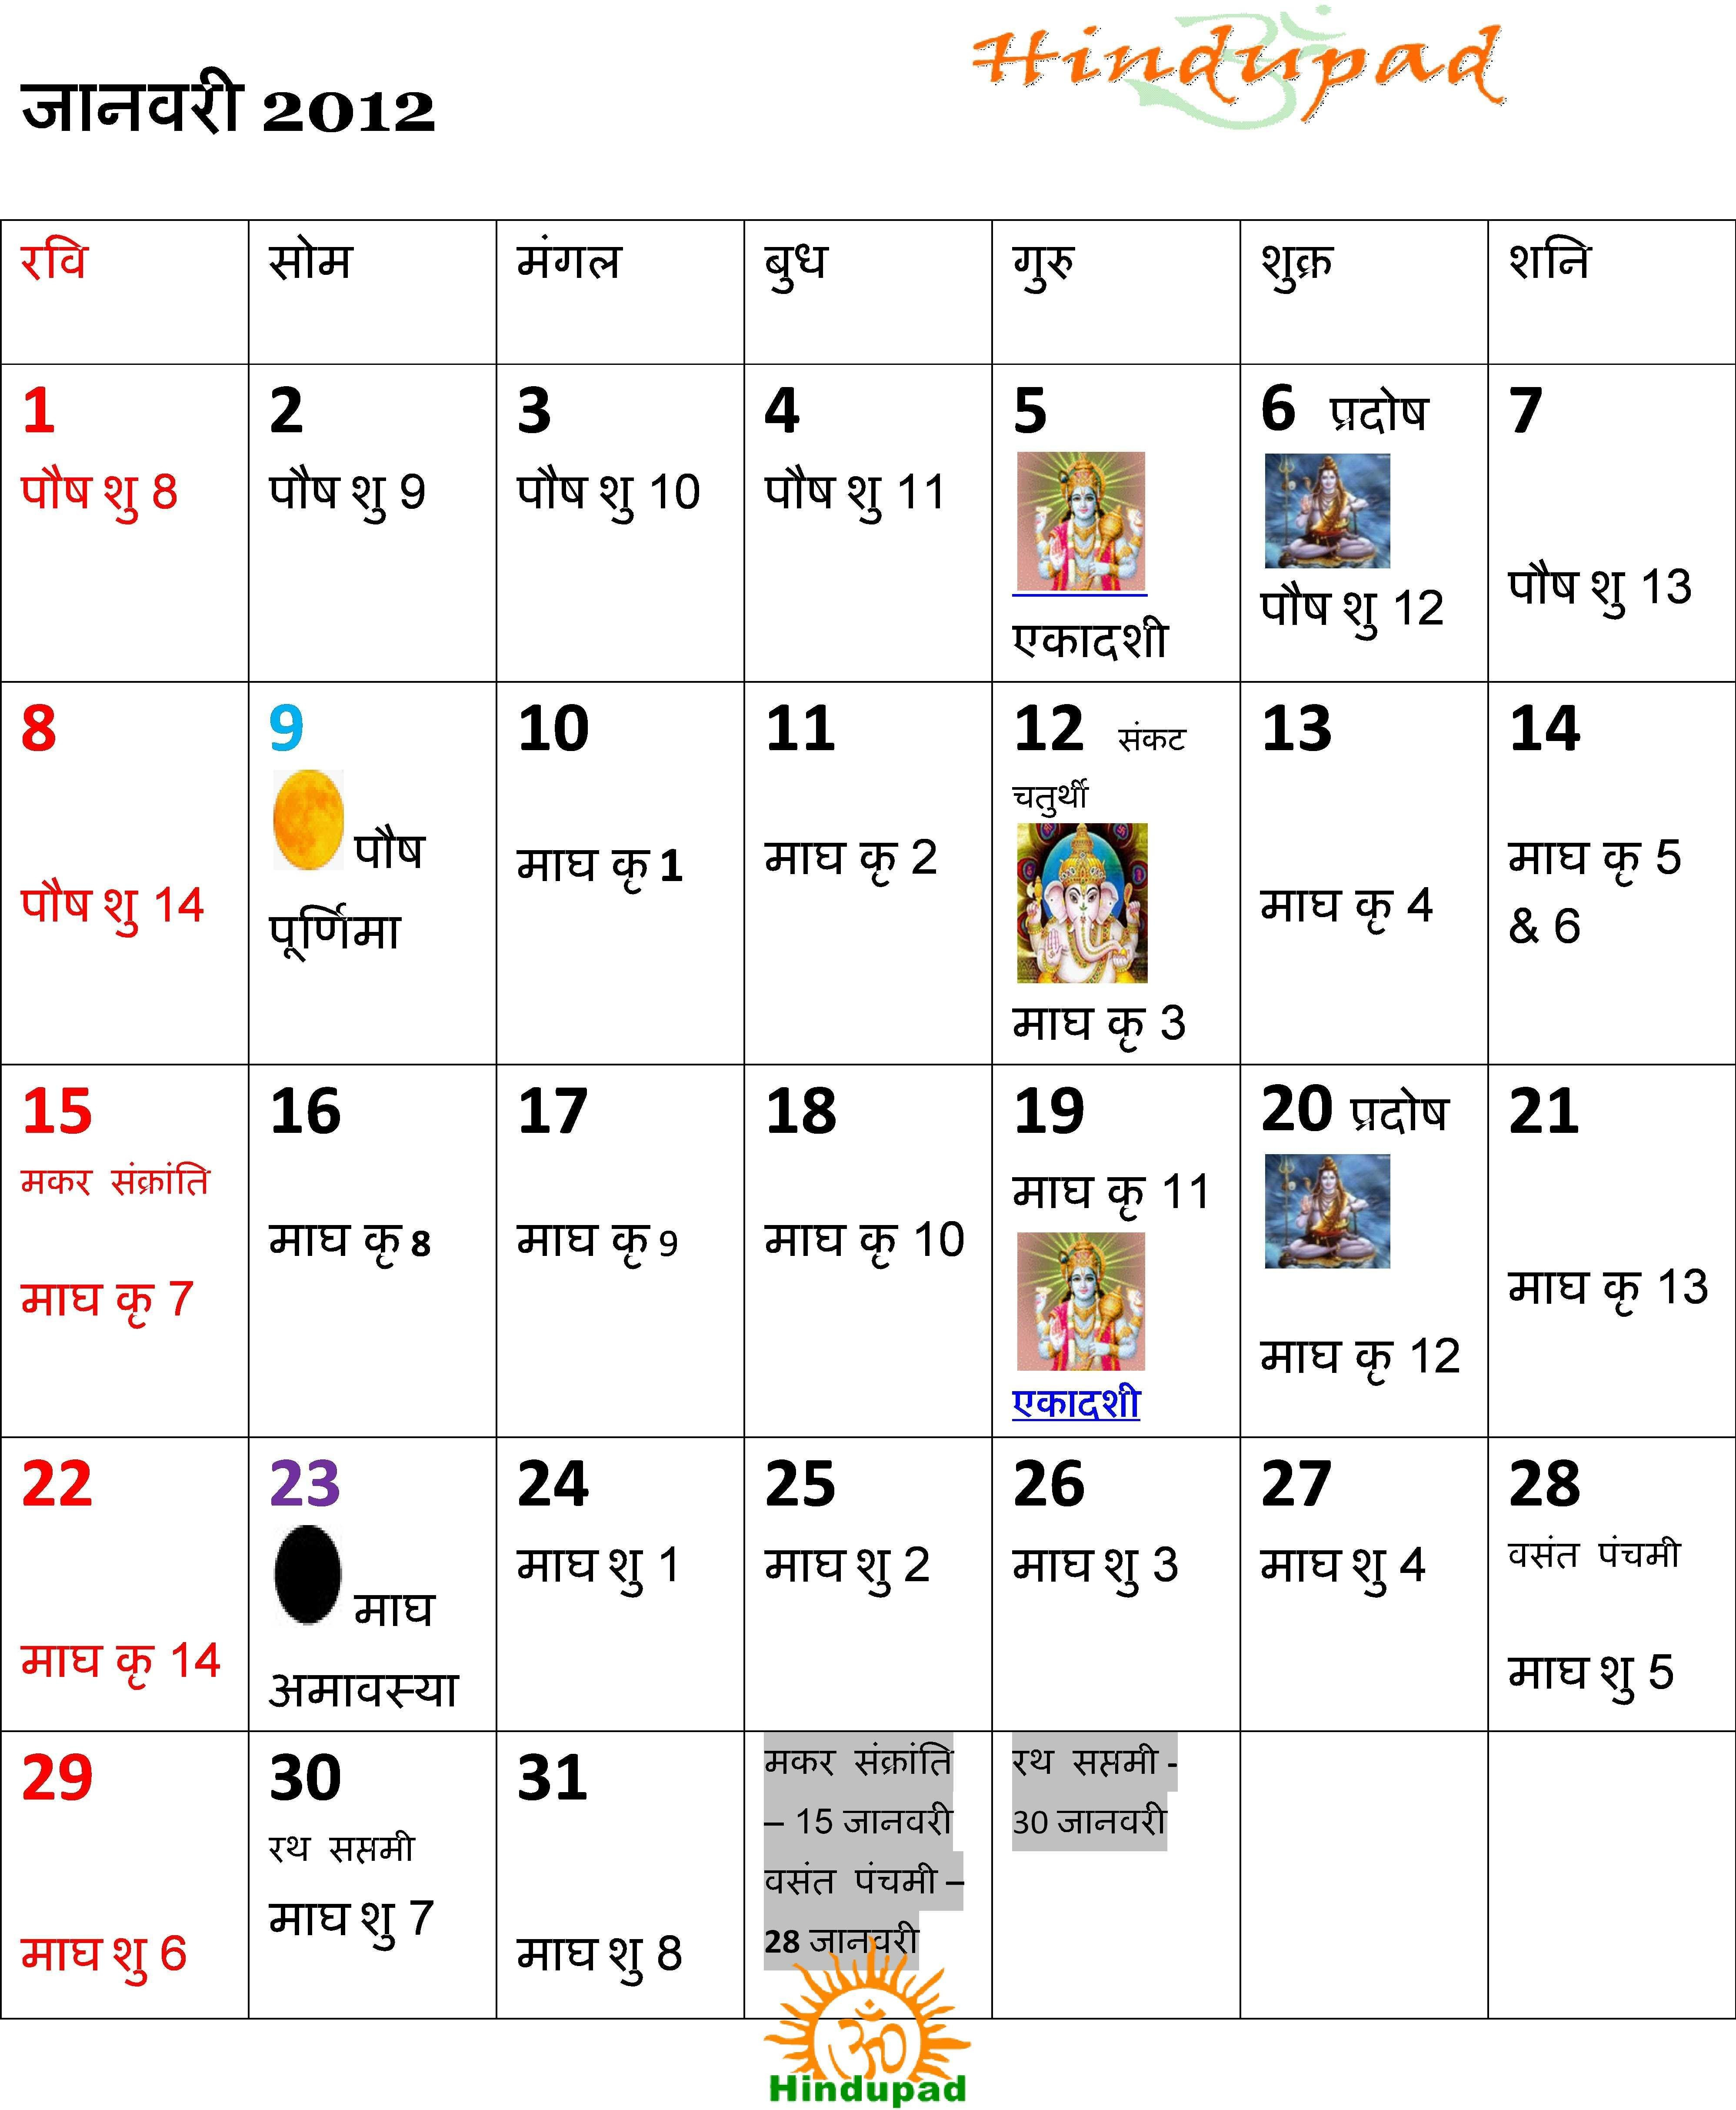 Hindu Calendar With Tithi 2018 2019 | Calendar Template throughout Calender Of October 2019 According To Tithi